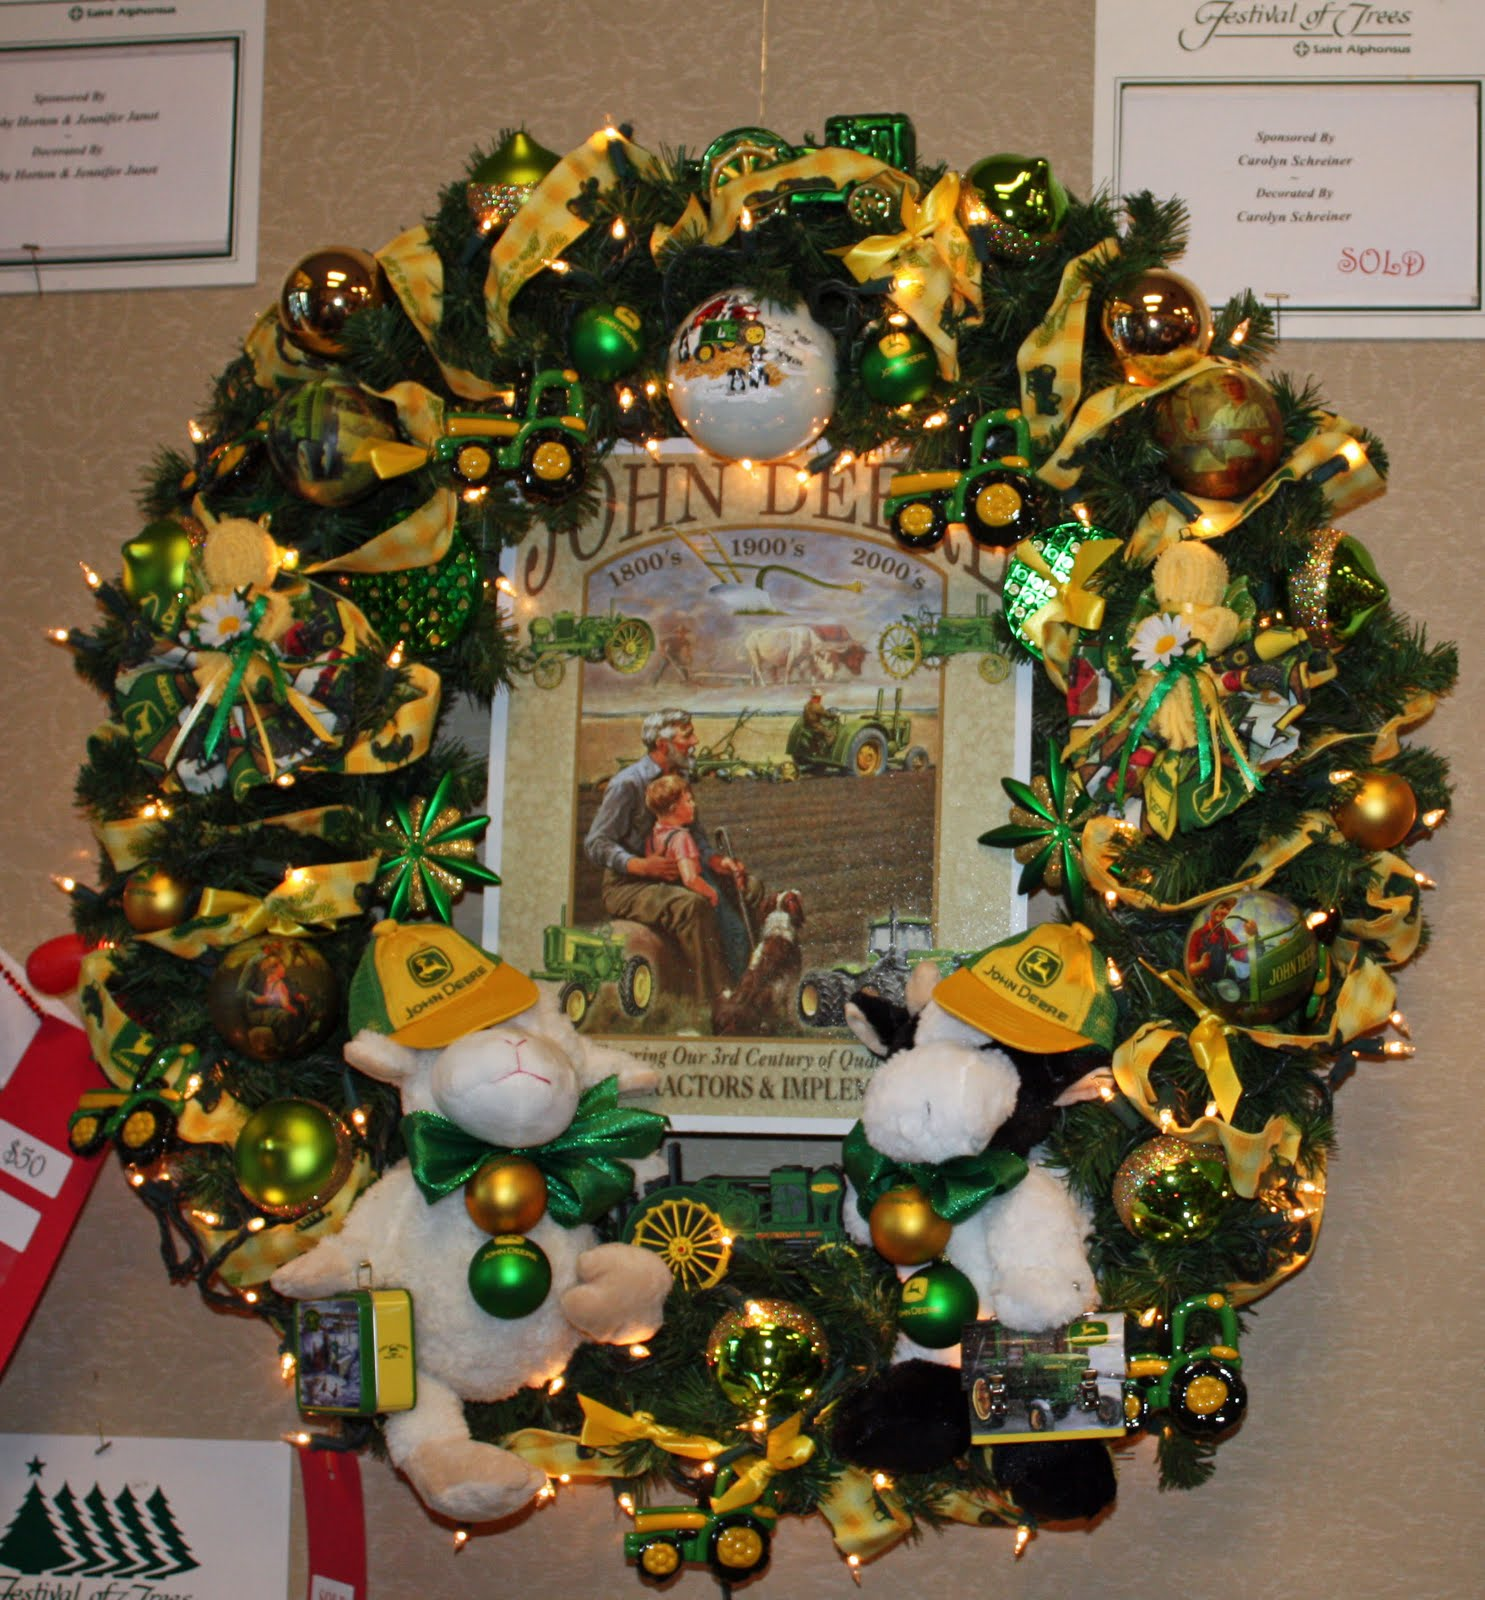 Boise Daily Photo: Nothing Says Christmas Like a John Deere